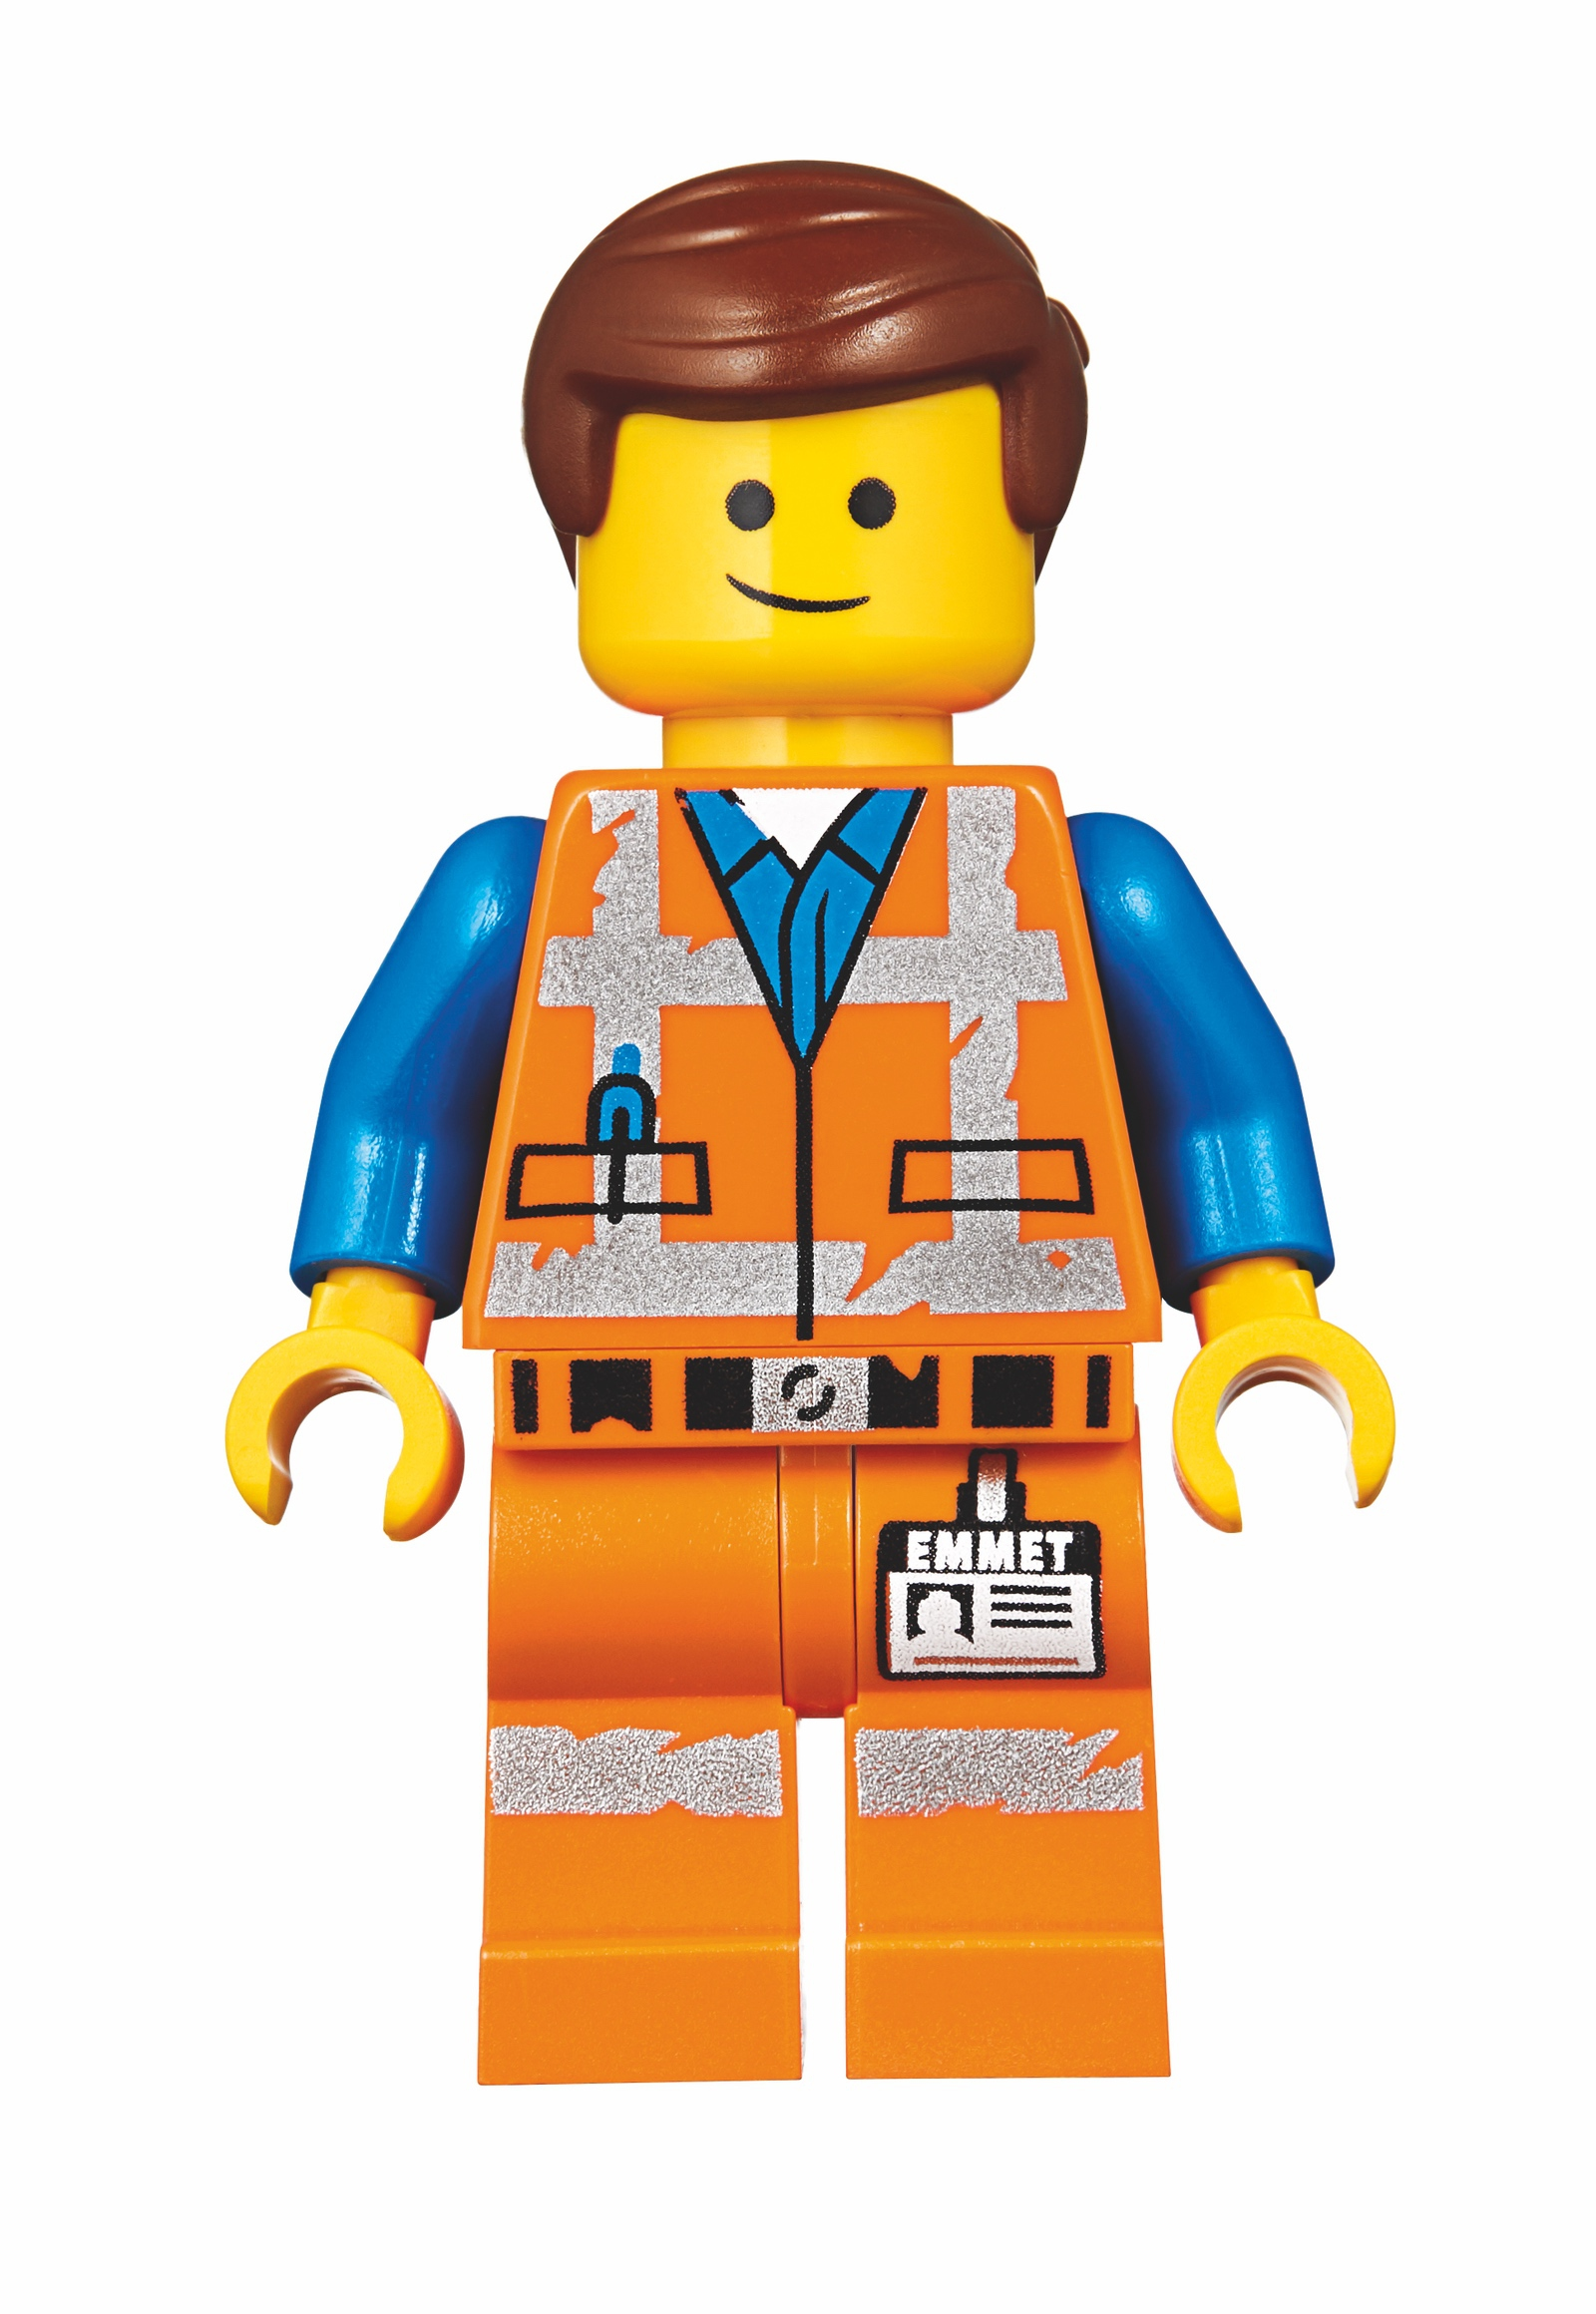 LEGO Movie 2 Construction Sets Revealed - Let the Building ...